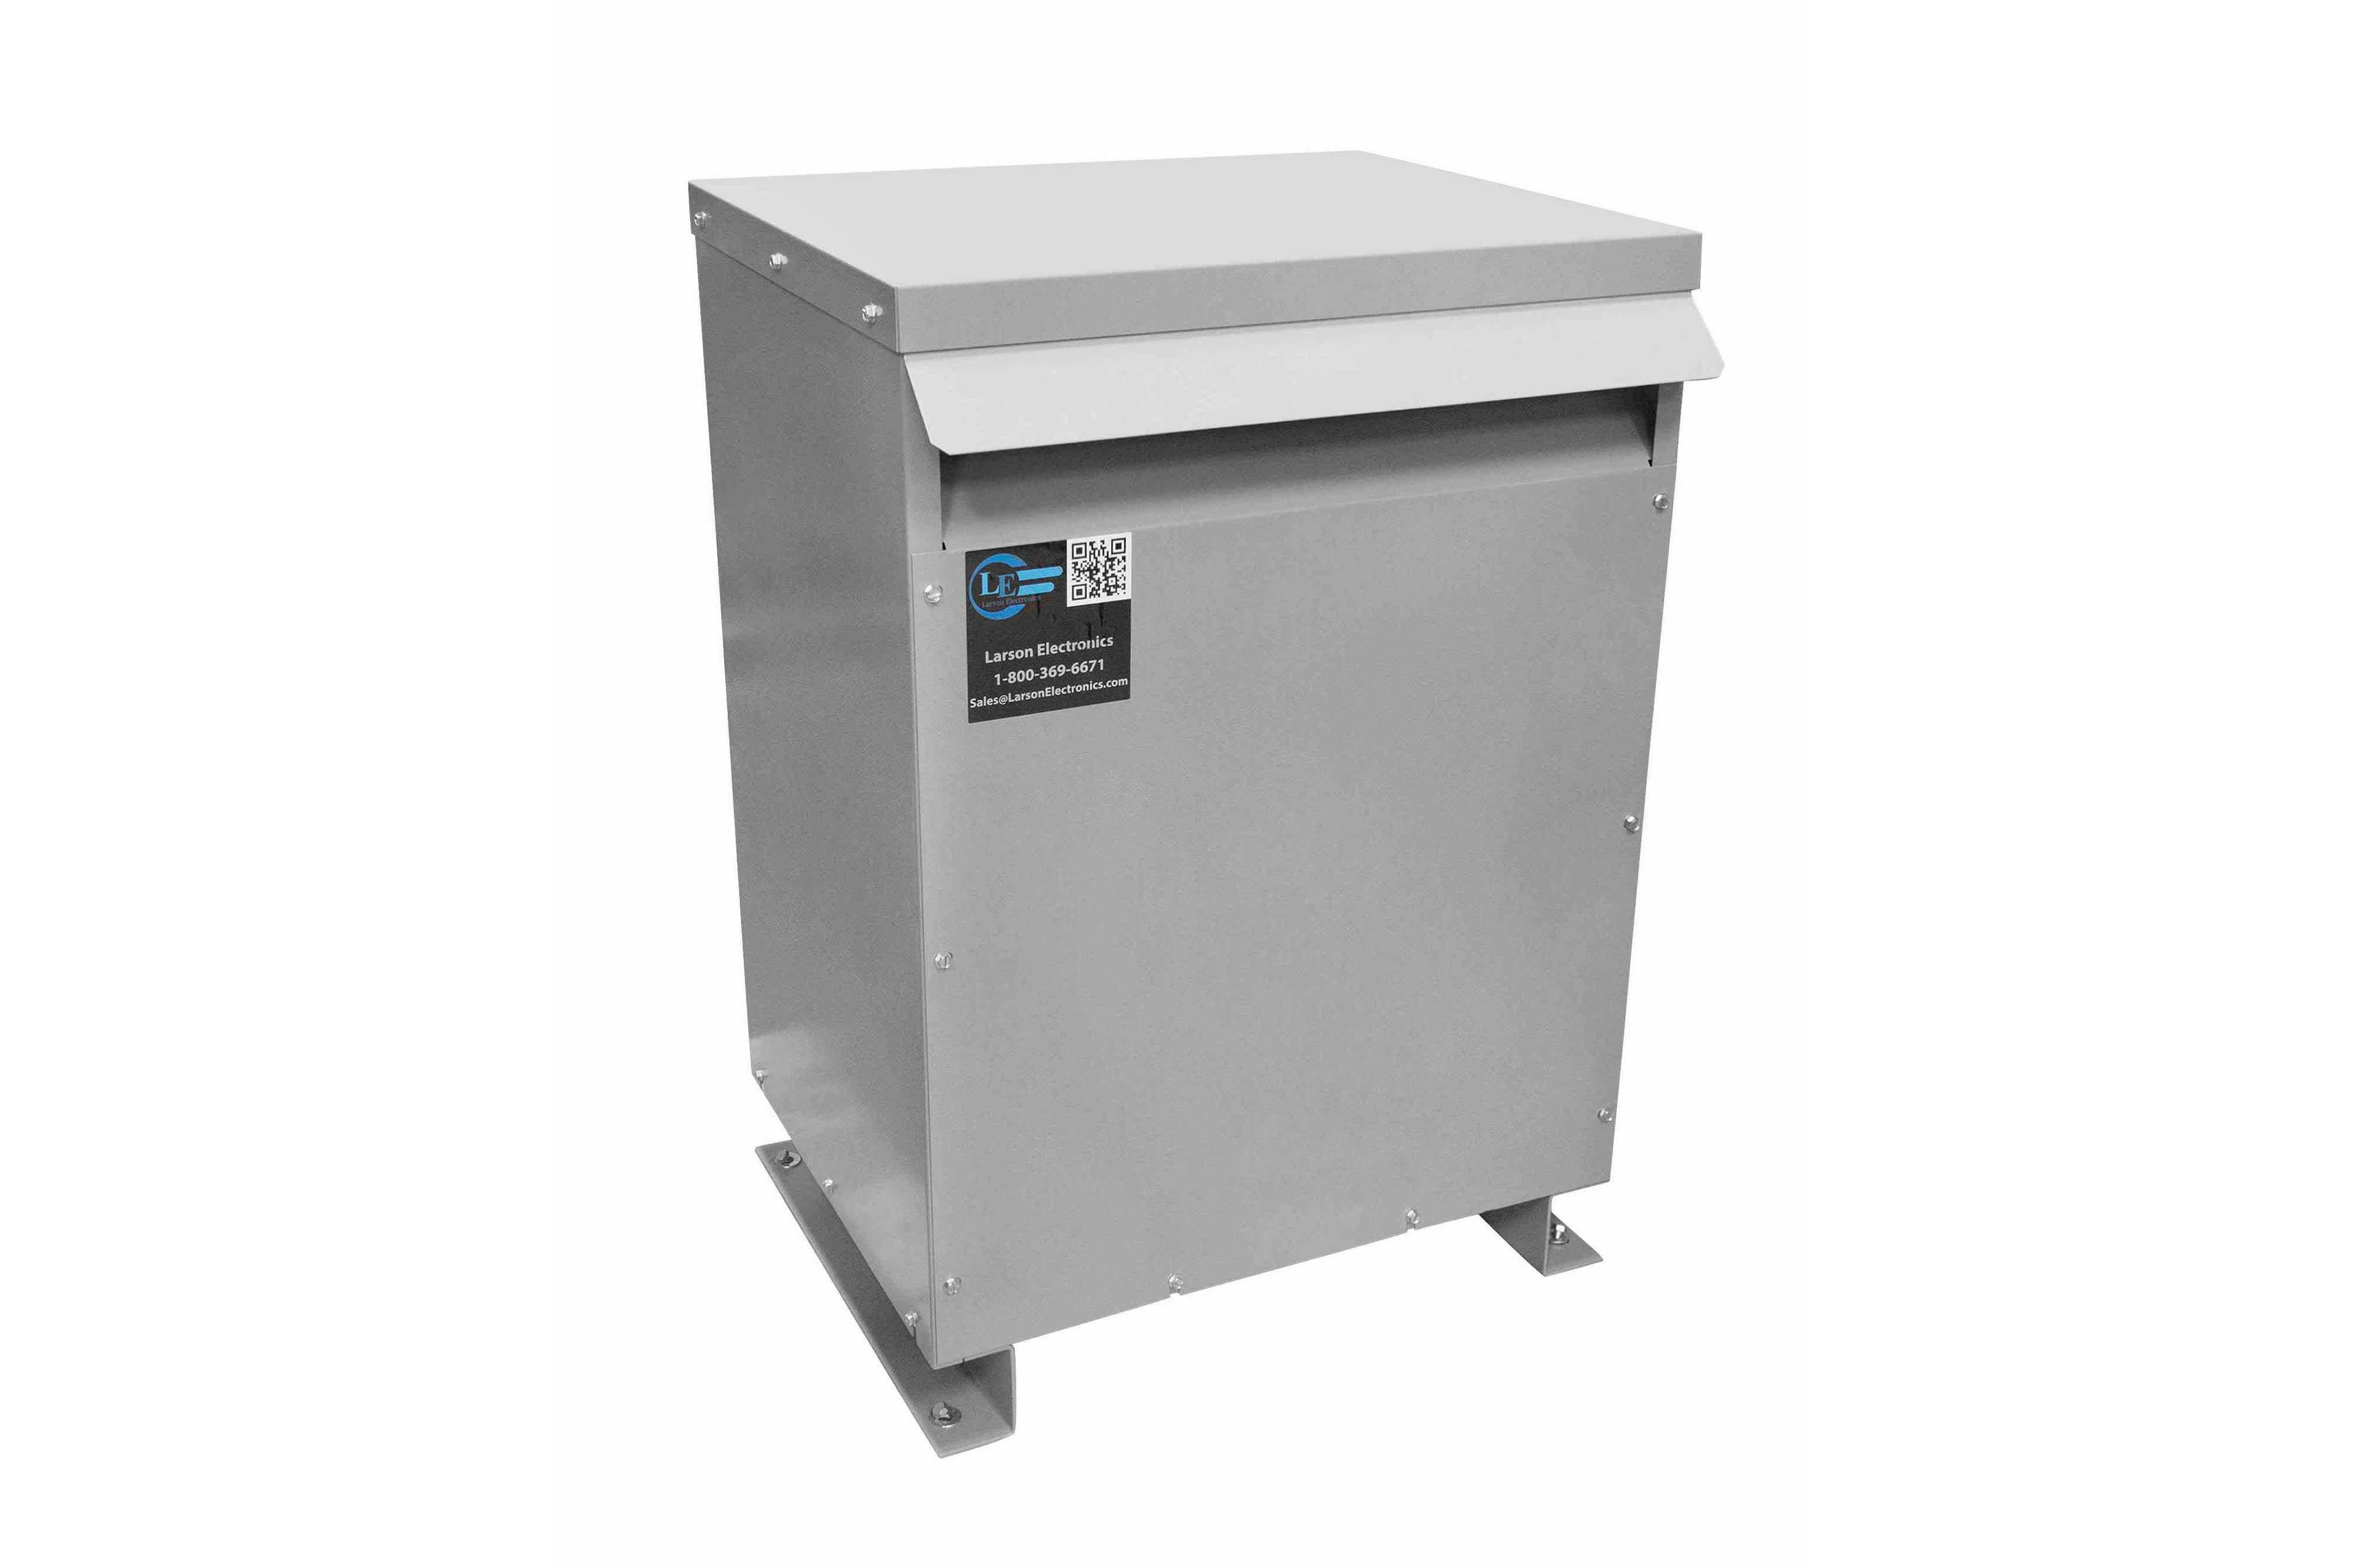 225 kVA 3PH Isolation Transformer, 575V Wye Primary, 208V Delta Secondary, N3R, Ventilated, 60 Hz